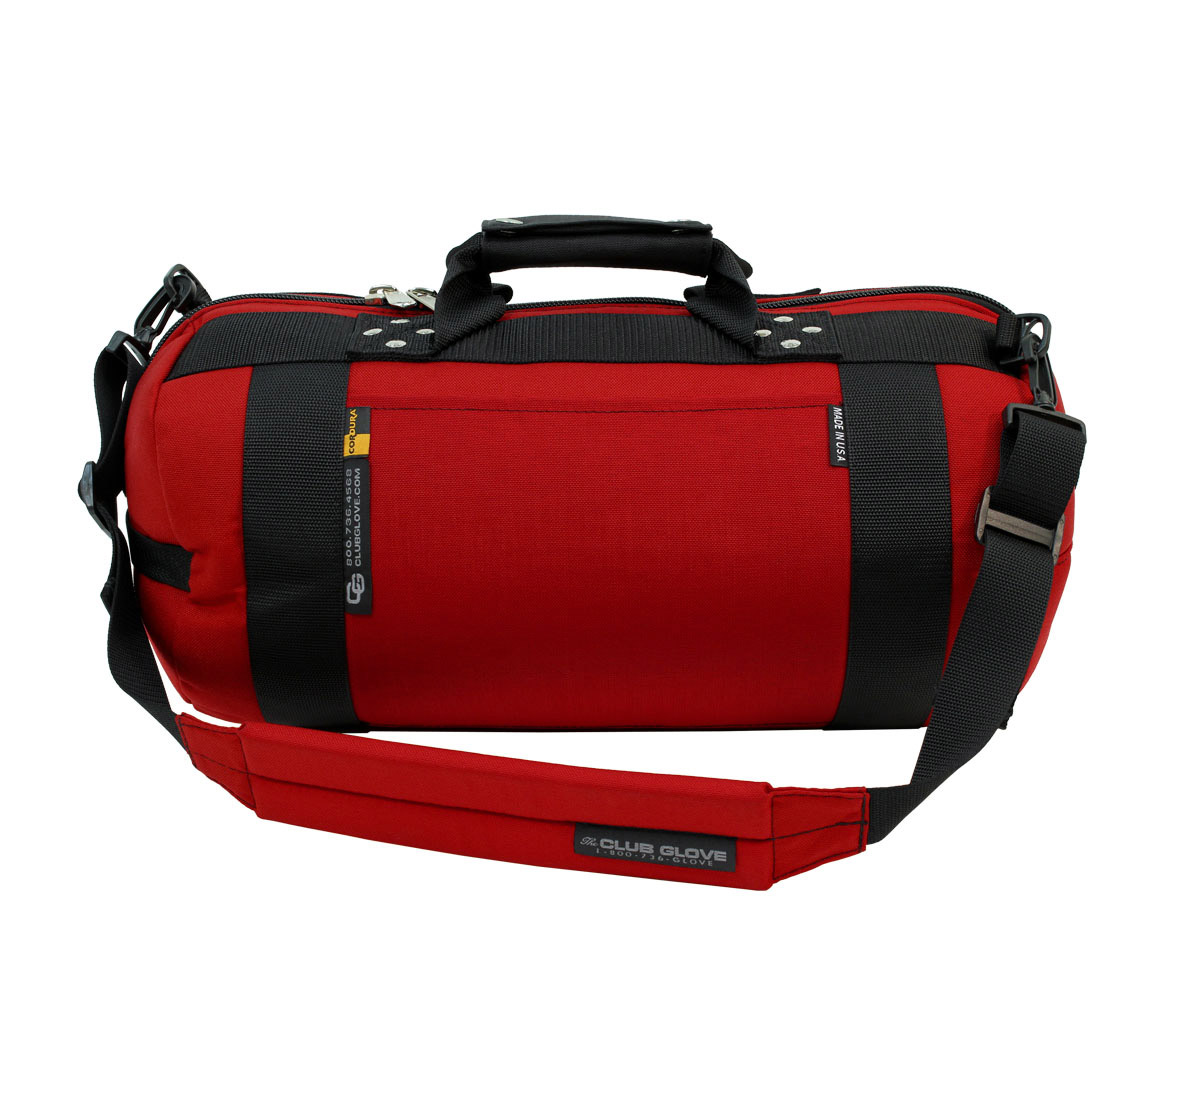 The ideal Country Club, airline carry-on, or gym bag 2c19bb1c6d